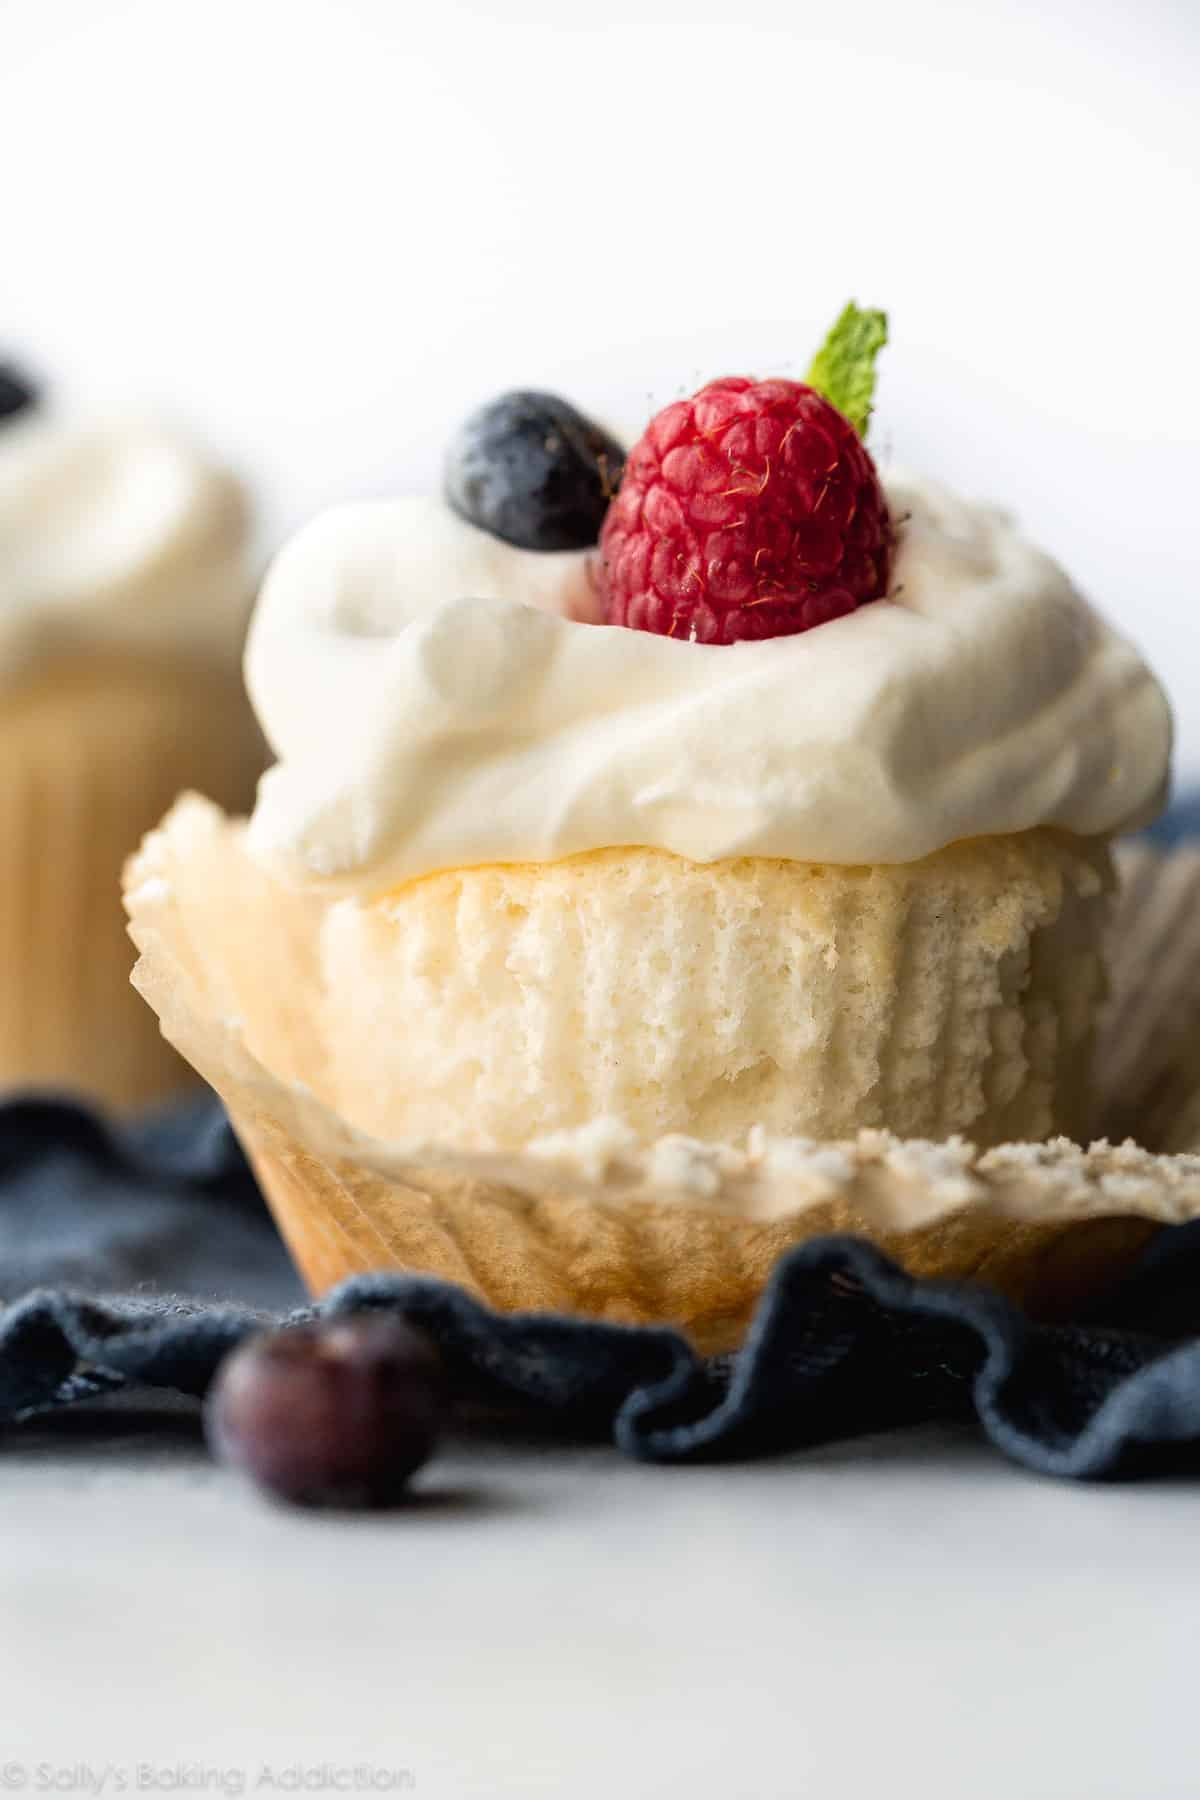 This easy recipe for angel food cupcakes is the perfect light dessert! Made from just a few ingredients, this angel food cake is light as air and topped with fluffy whipped cream. Recipe on sallysbakingaddiction.com